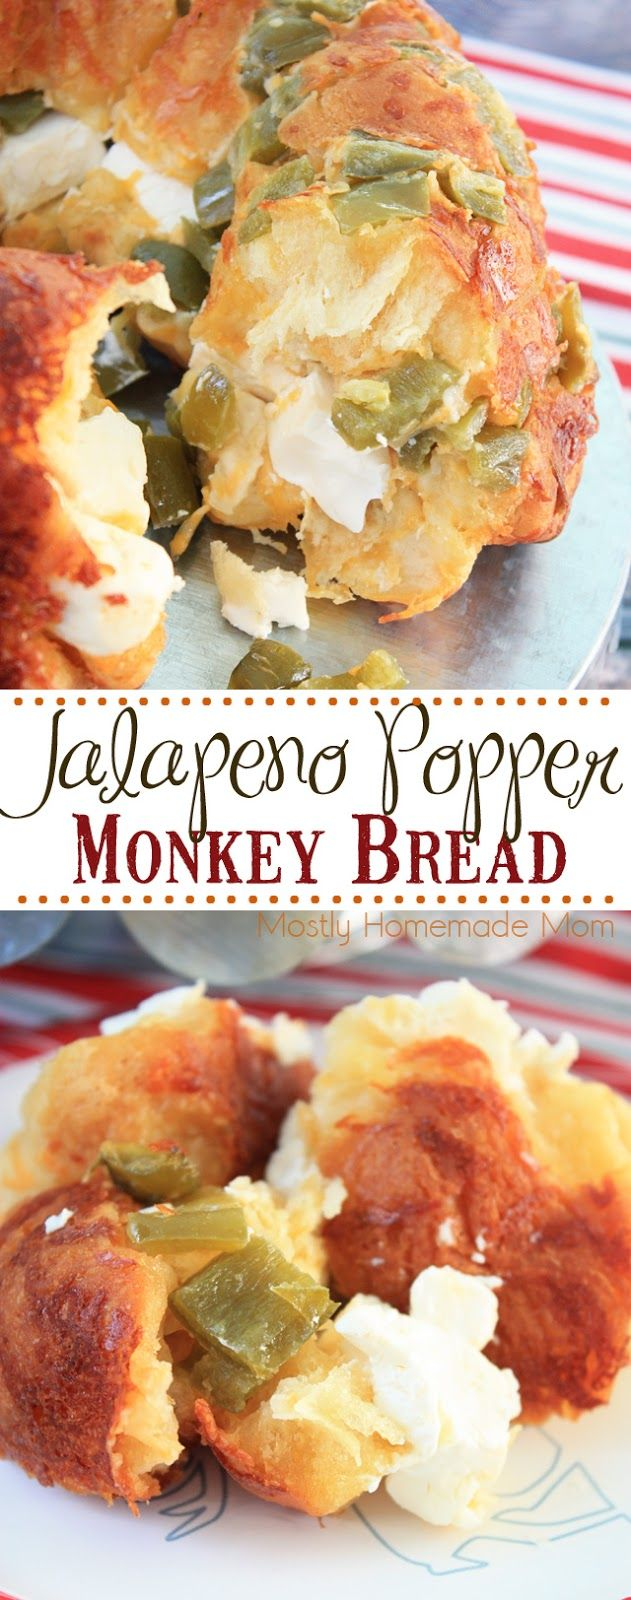 Jalapeno Popper Monkey Bread - the perfect party food or game day recipe! Spicy jalapenos, cheddar cheese, and cream cheese along with biscuits - great to set out on an appetizer table! #VivaLaMorena #ad